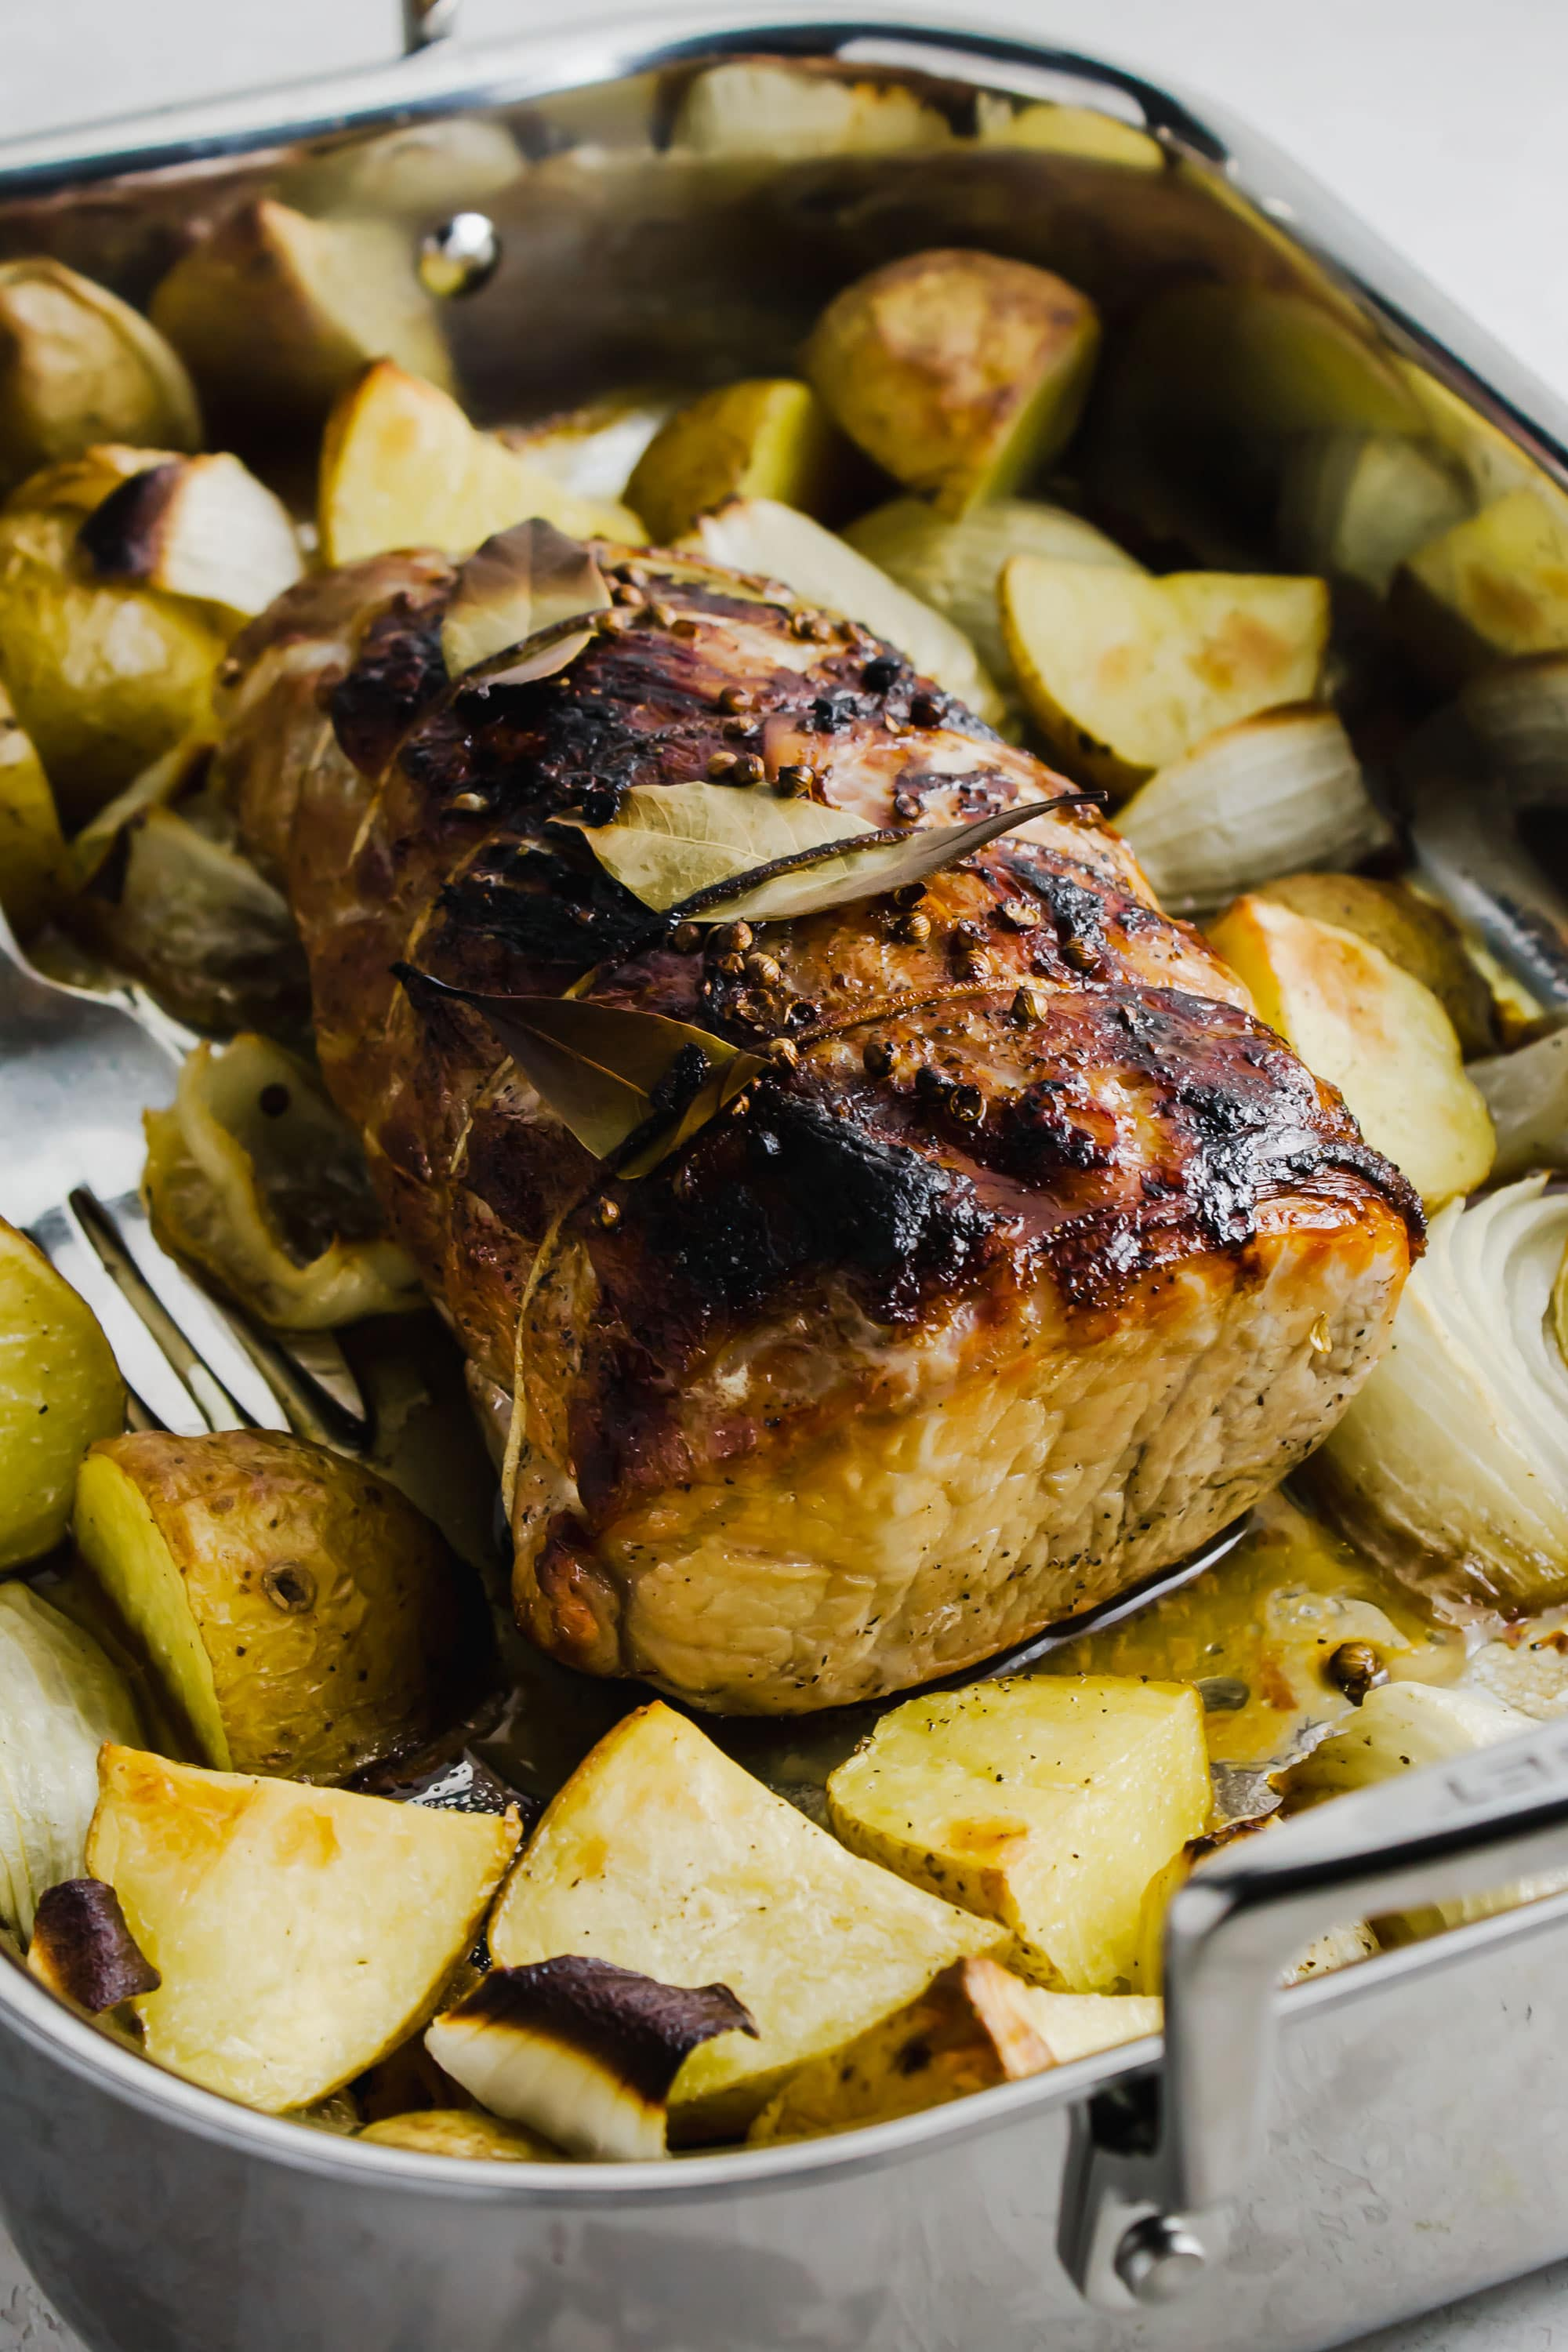 Cider brined pork roast with potatoes and onions surrounding it.